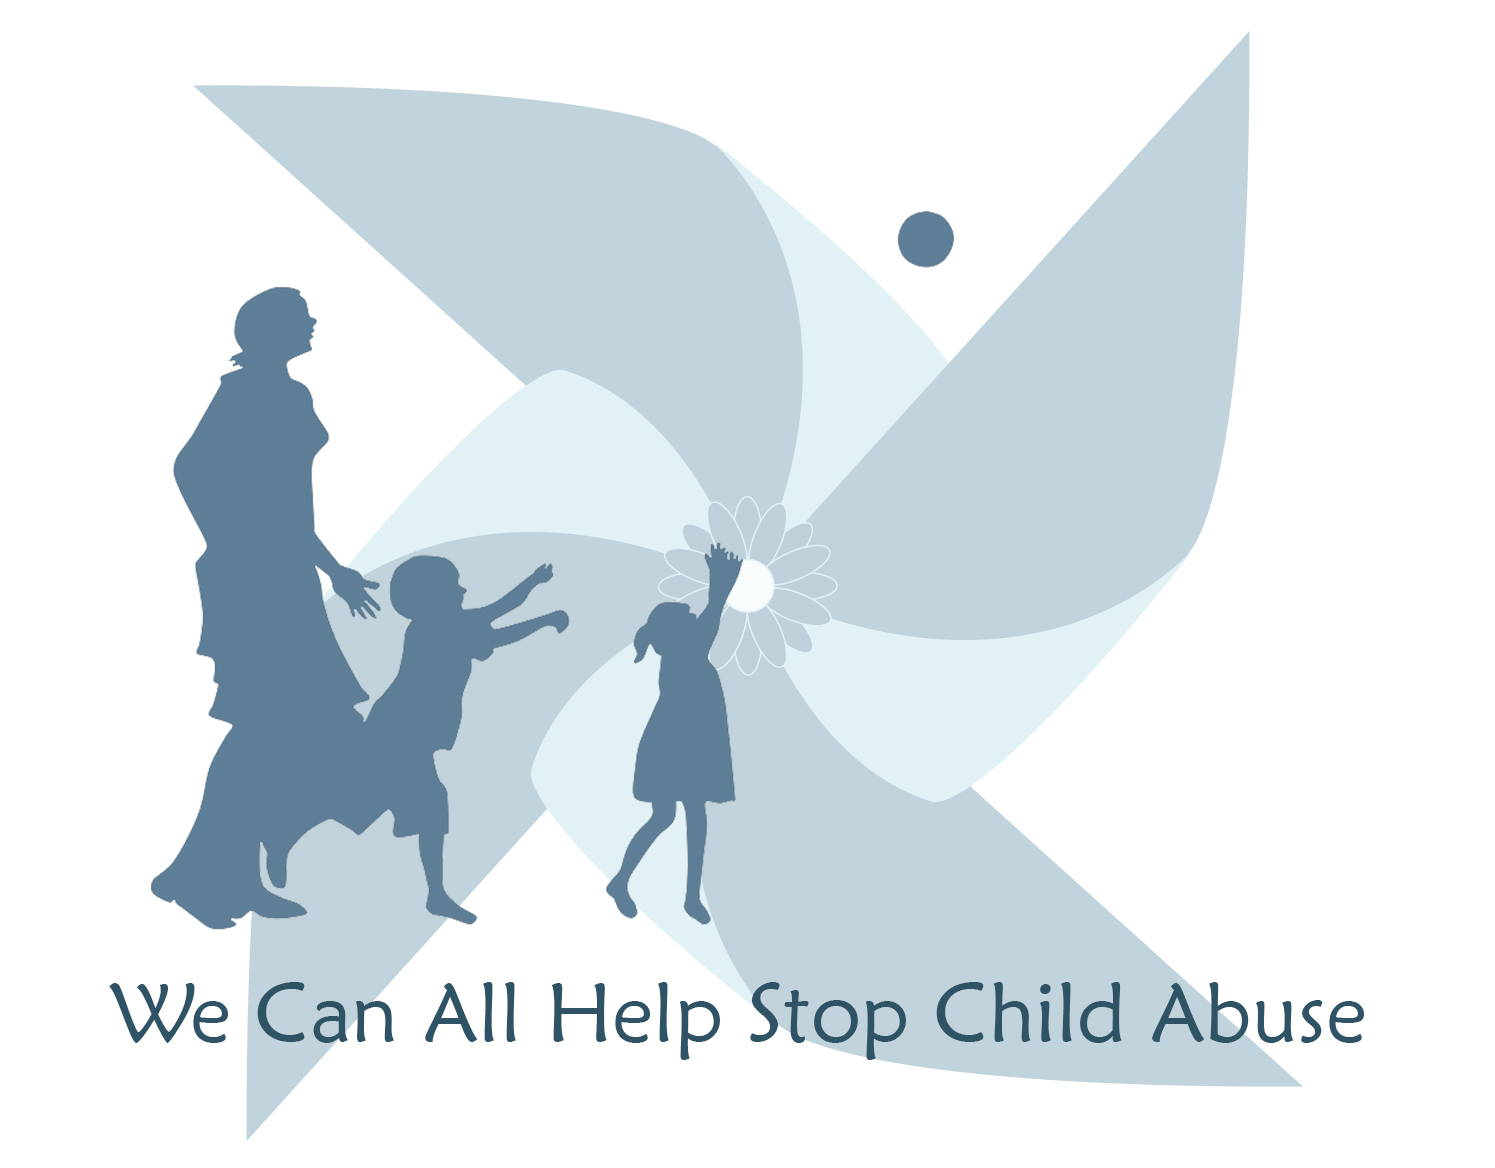 Child Abuse Prevention Social Media Banner